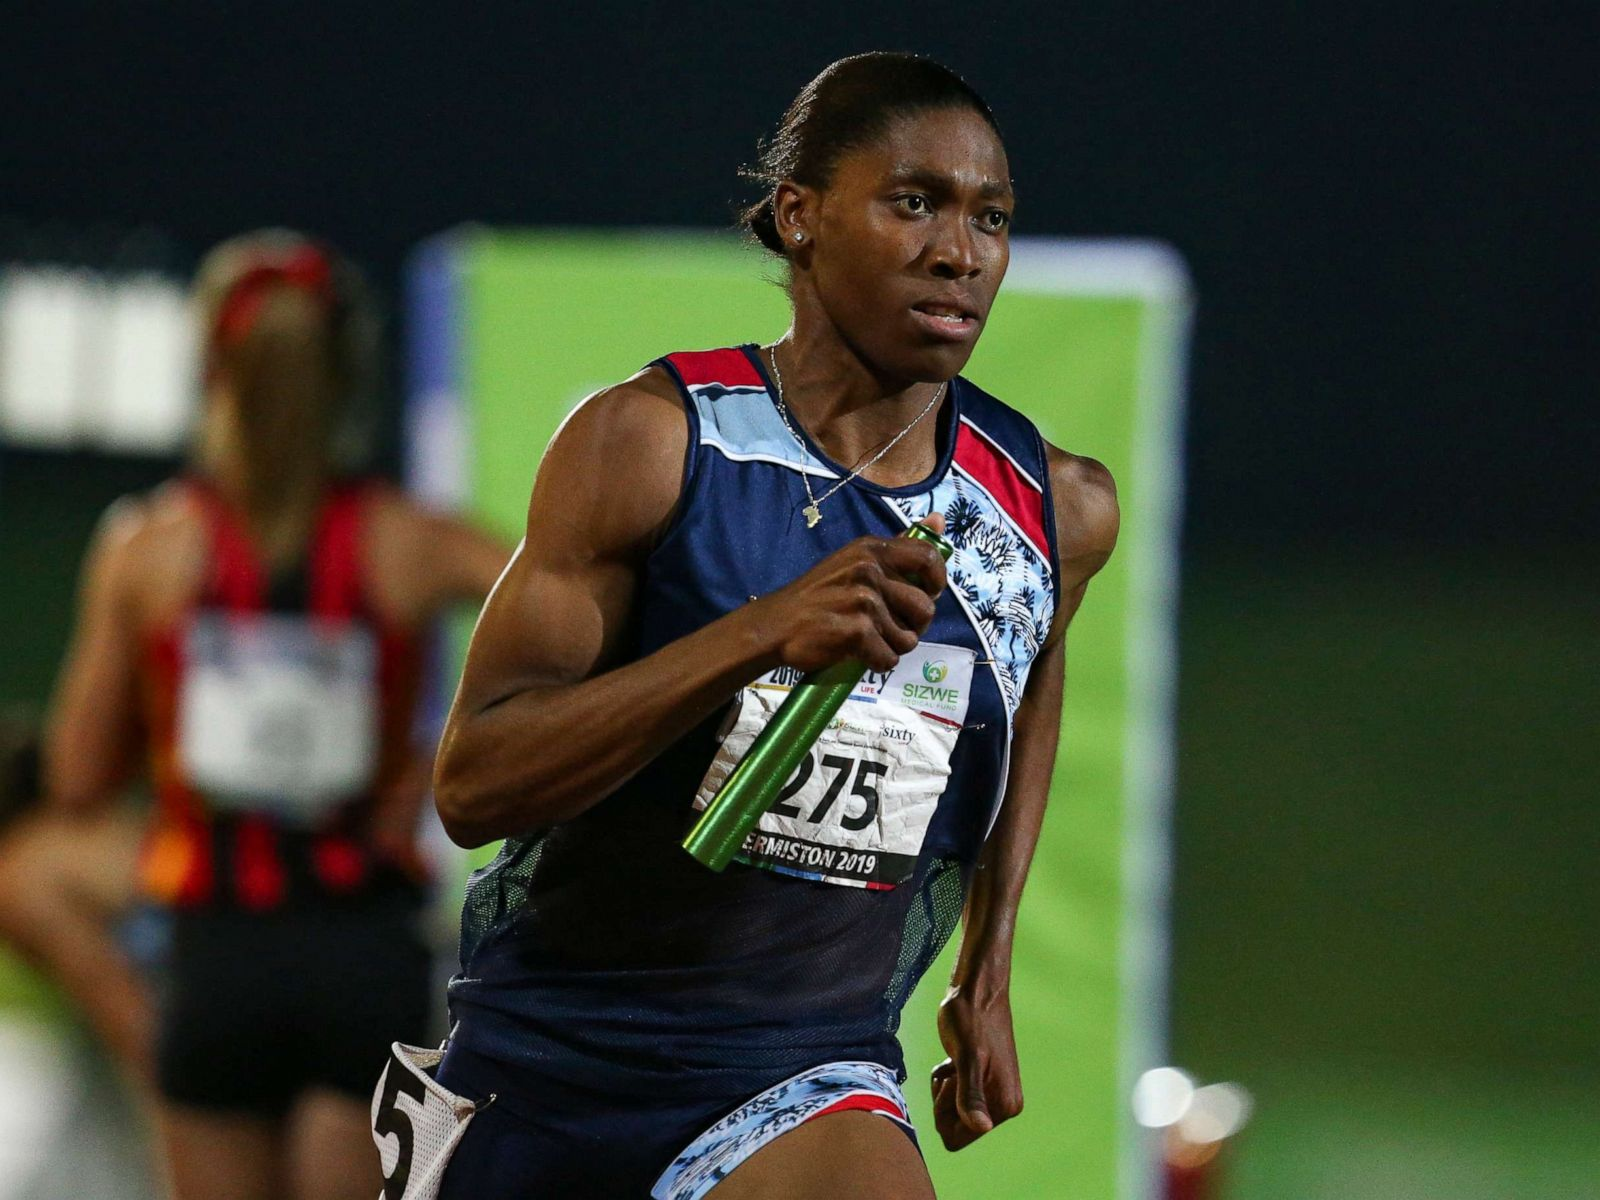 Caster Semenya competes in Johannesburg, South Africa. Photo:  Roger Sedres | AP .